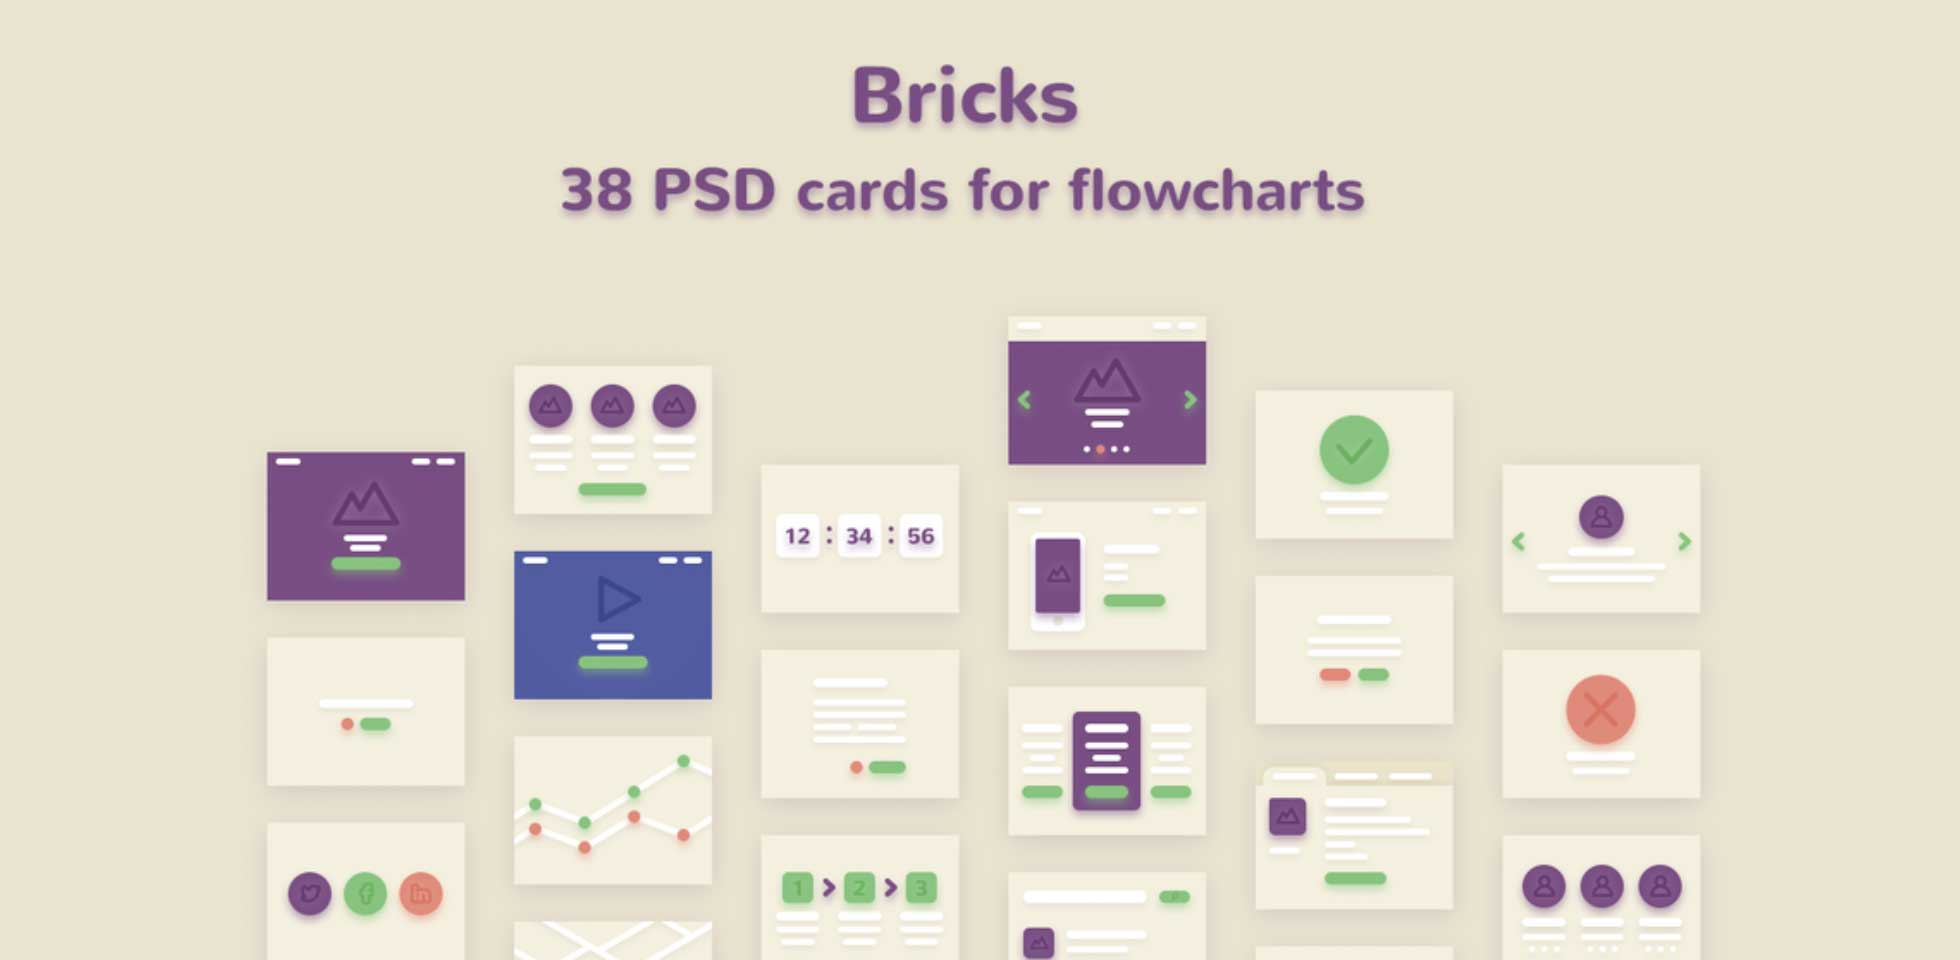 Free Download: Bricks - 38 PSD Cards for Flowcharts